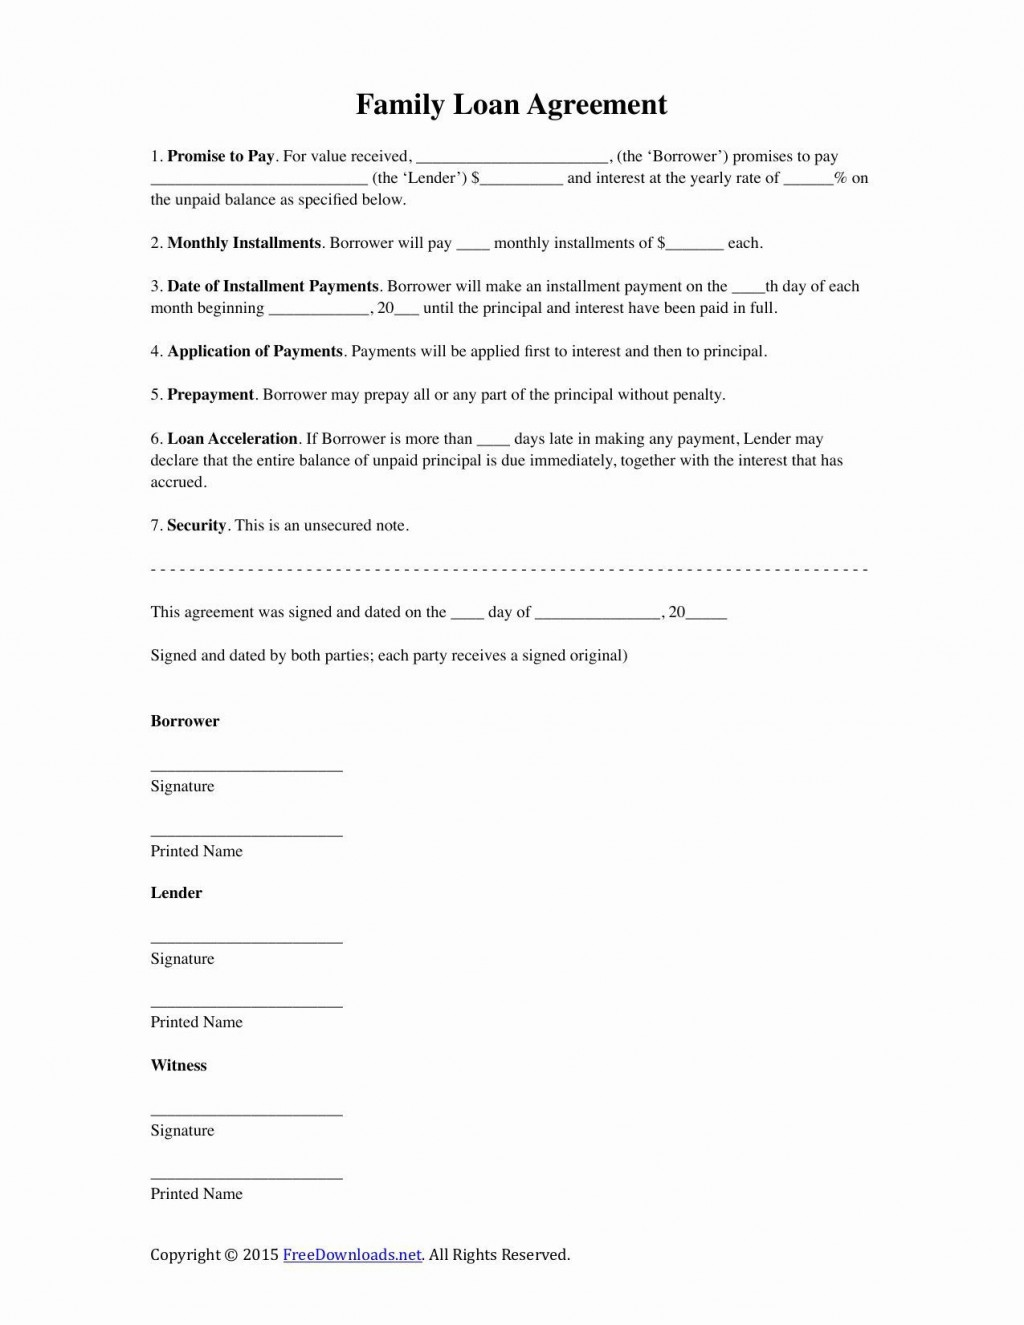 000 Awful Family Loan Agreement Template Pdf Sample  FreeLarge